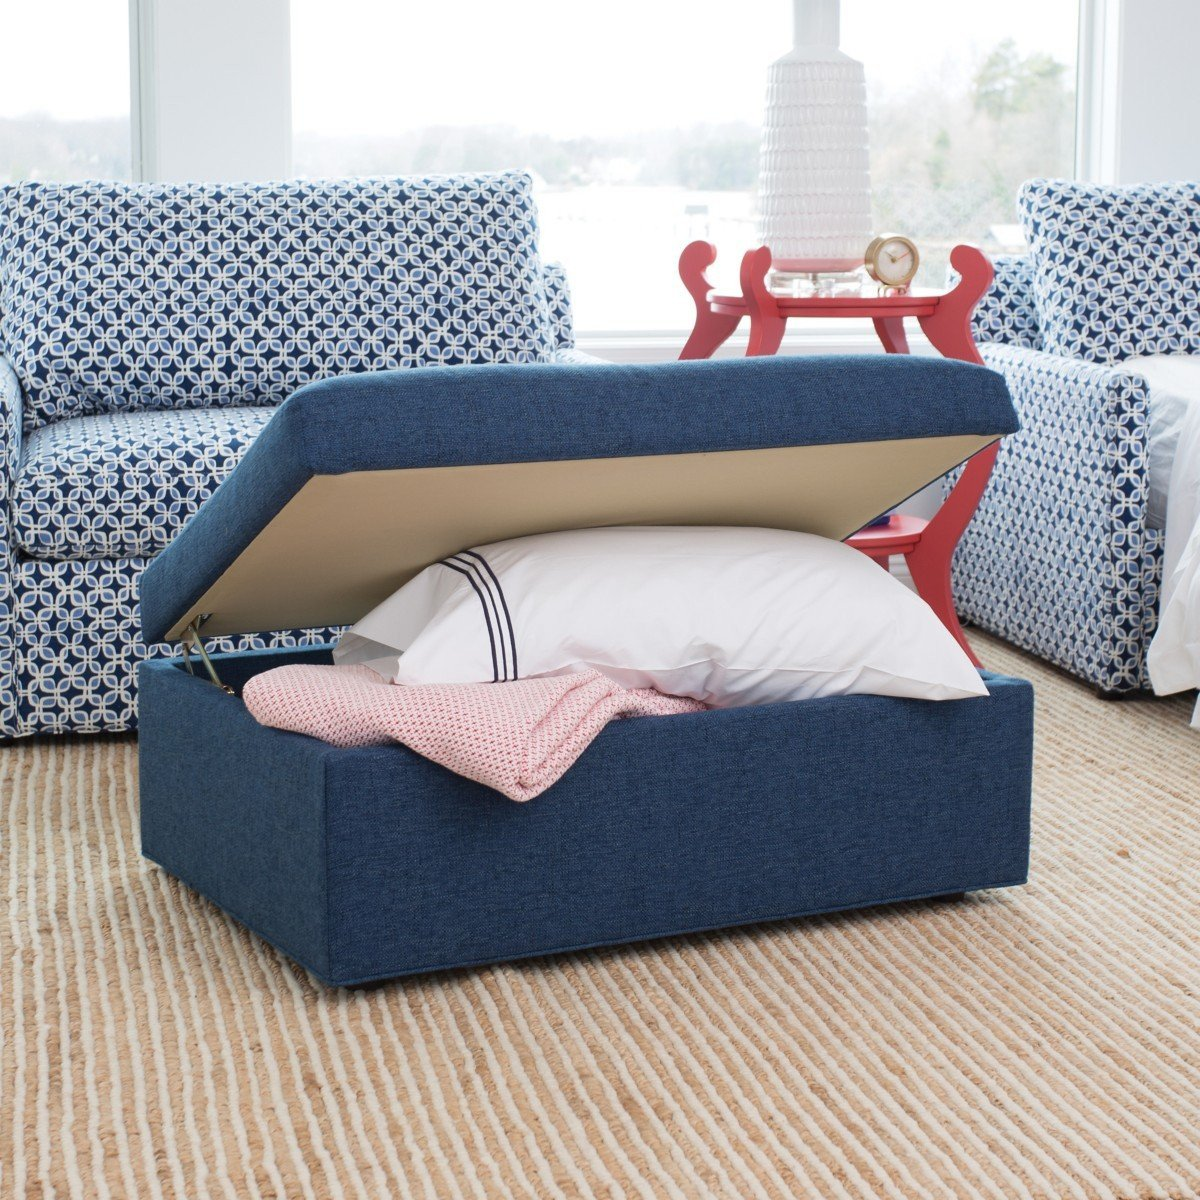 Bedroom Storage Bench Seat Elegant Milly Storage Ottoman